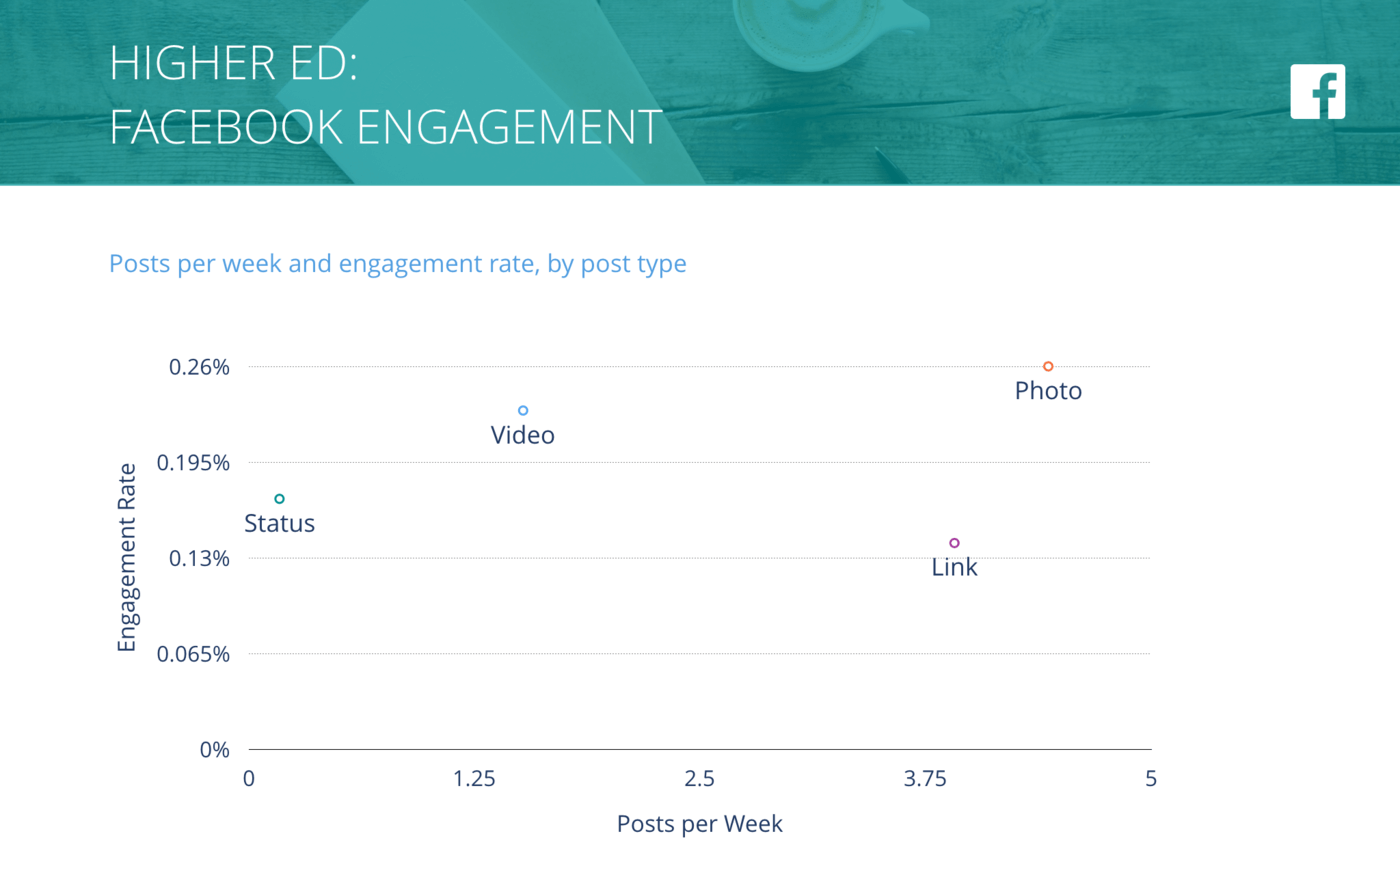 slide for Facebook Posts per Week vs. Engagement Rate per Post, Higher Ed